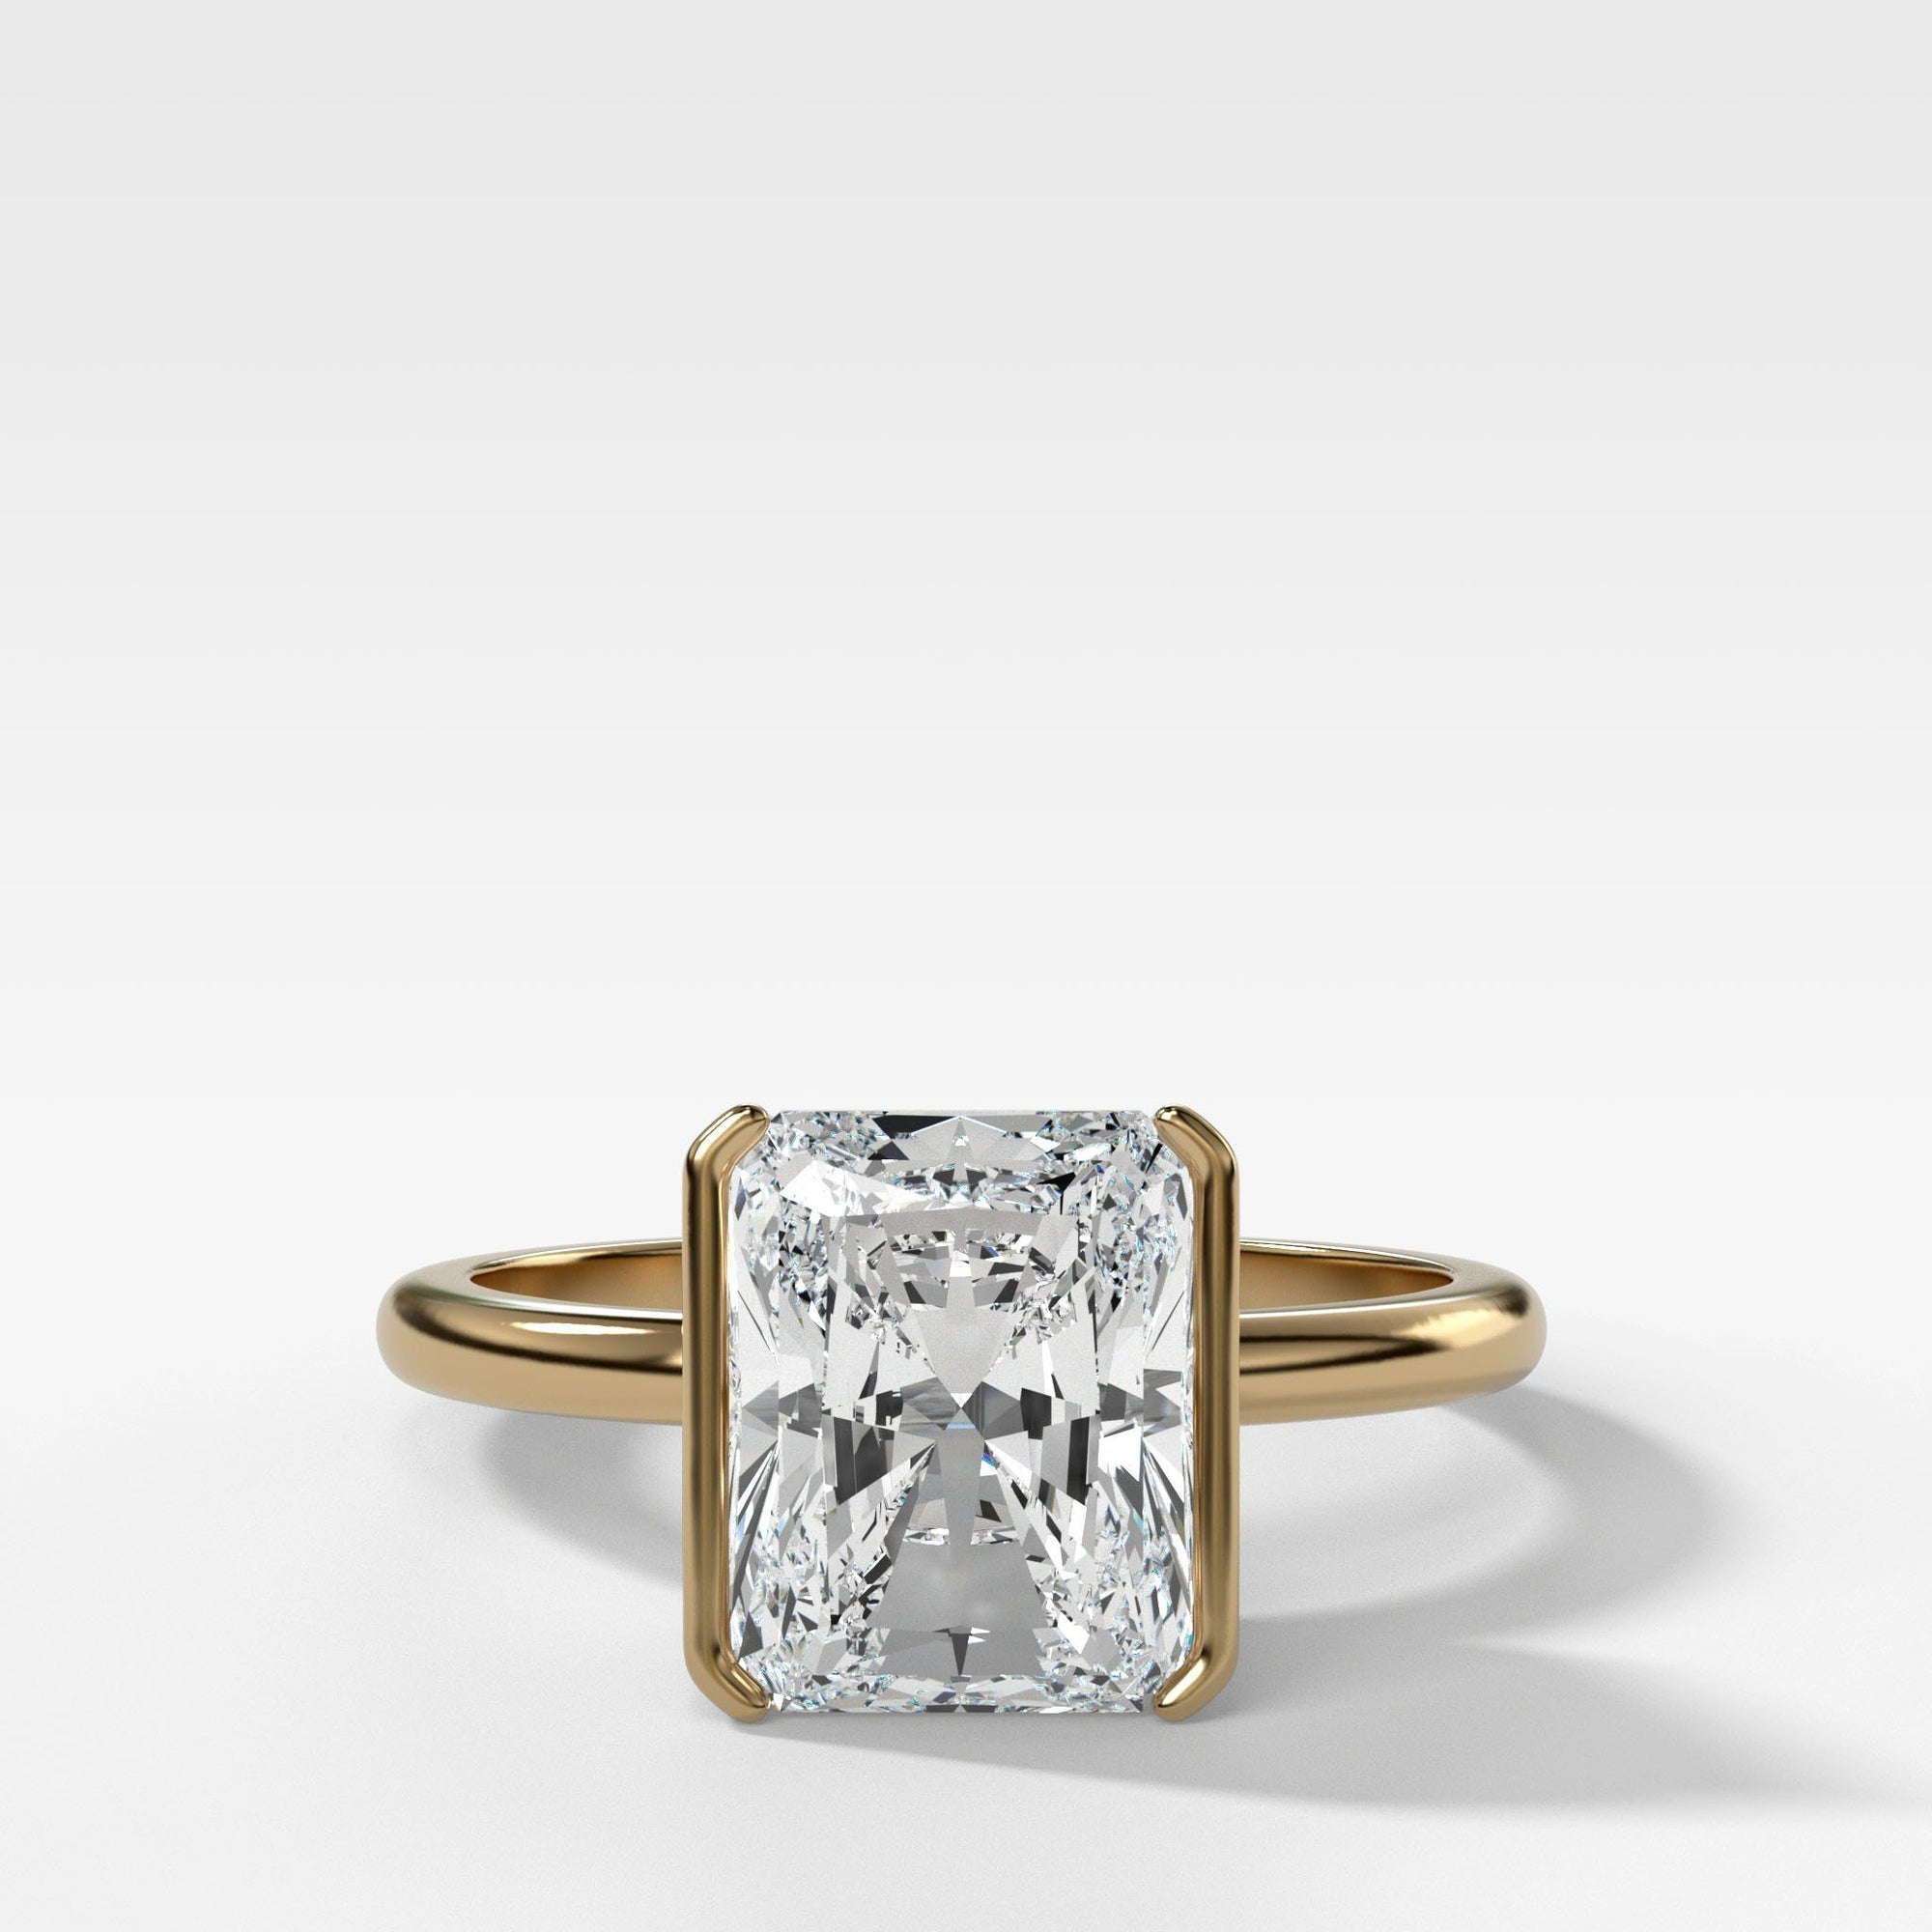 Half Bezel Solitaire Engagement ring with Elongated Radiant Cut in Yellow Gold by Good Stone